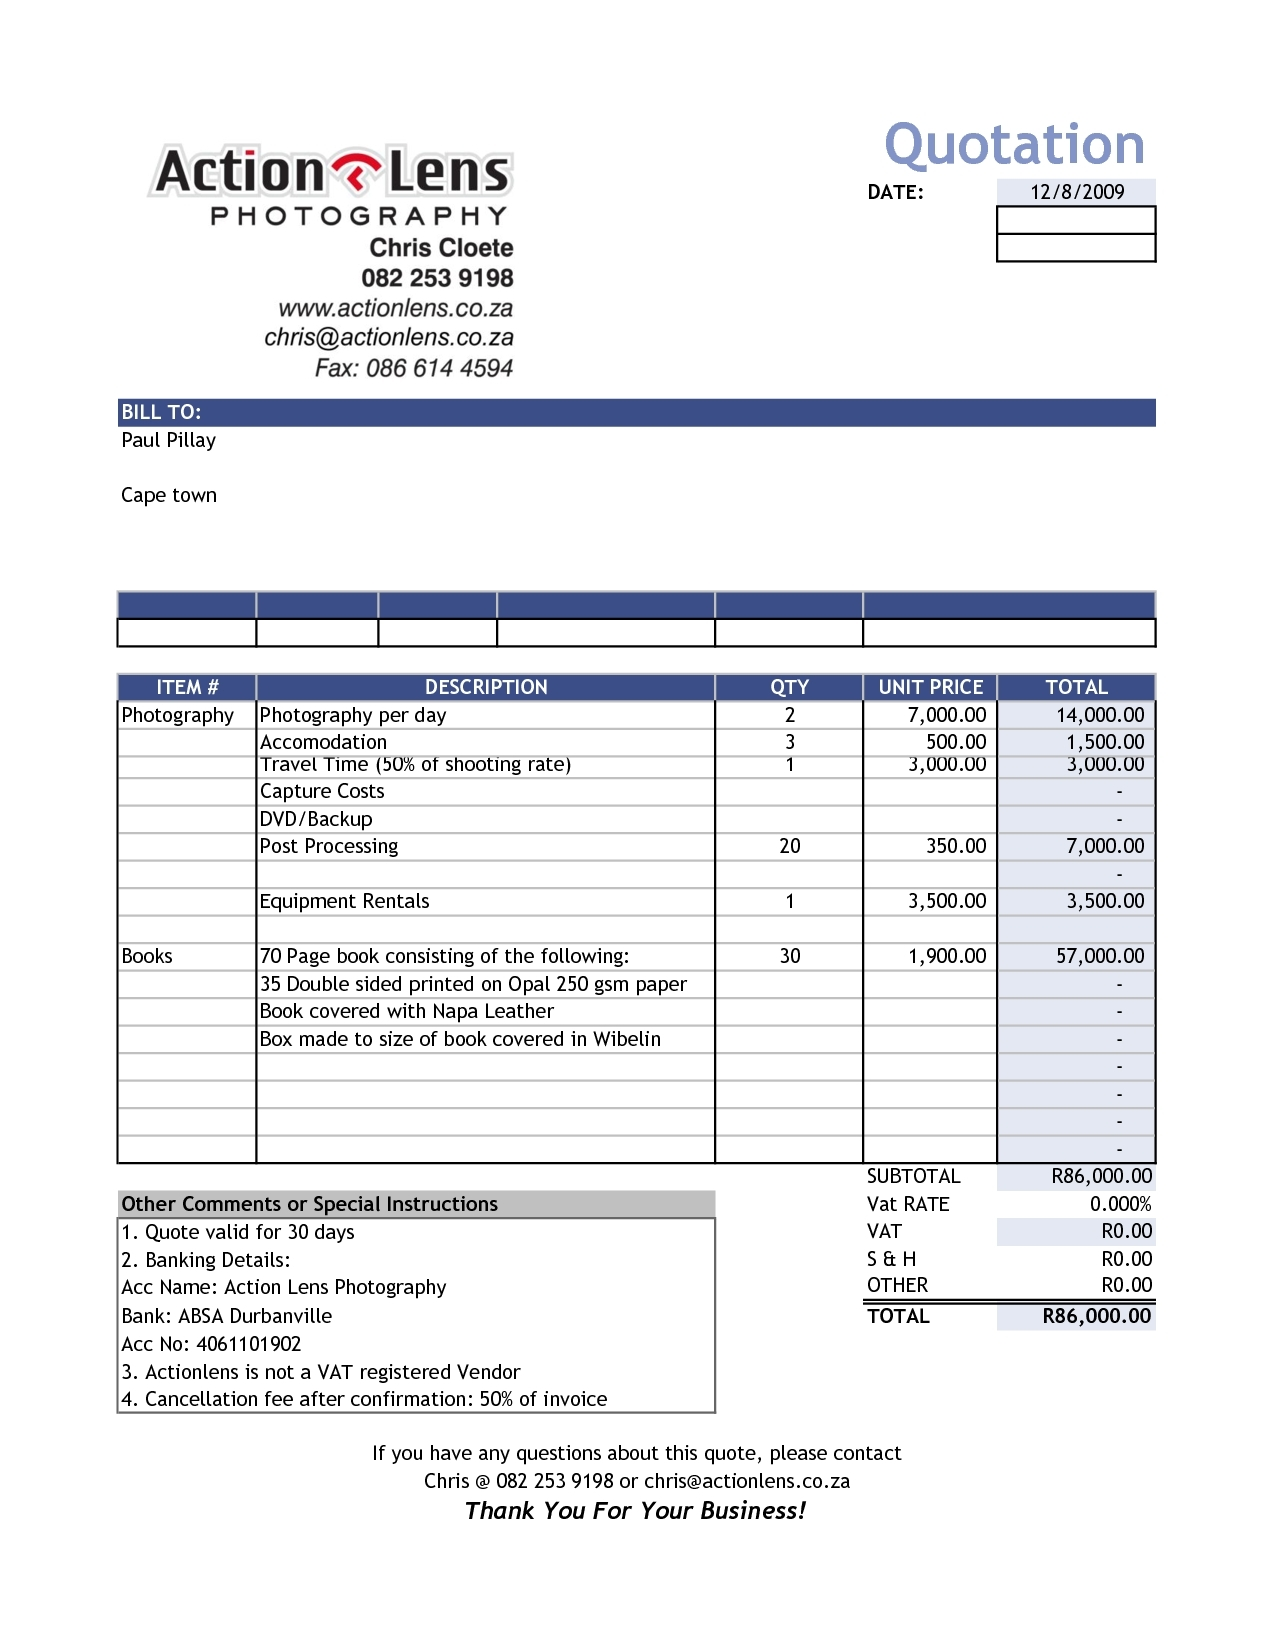 example sales invoice doc578747 sales invoice example sales invoice template for 1275 X 1650